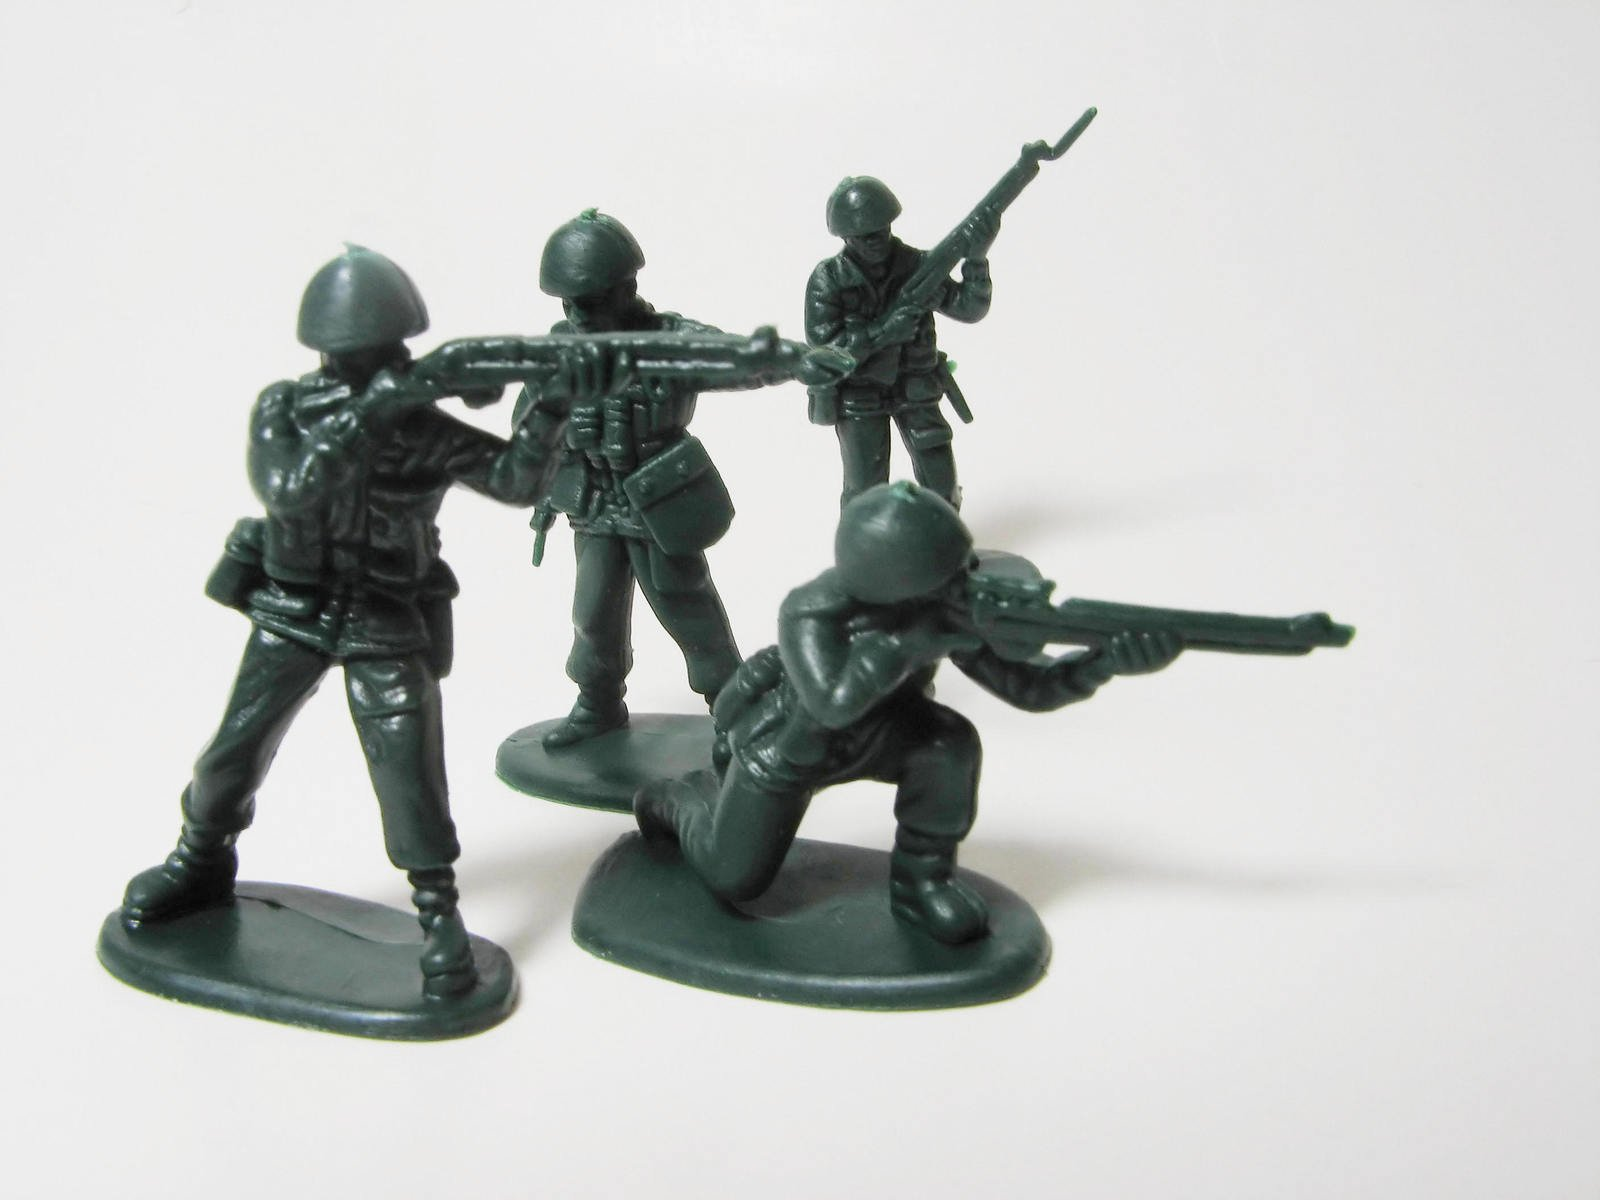 Free Toy Soldiers Stock Photo - FreeImages com